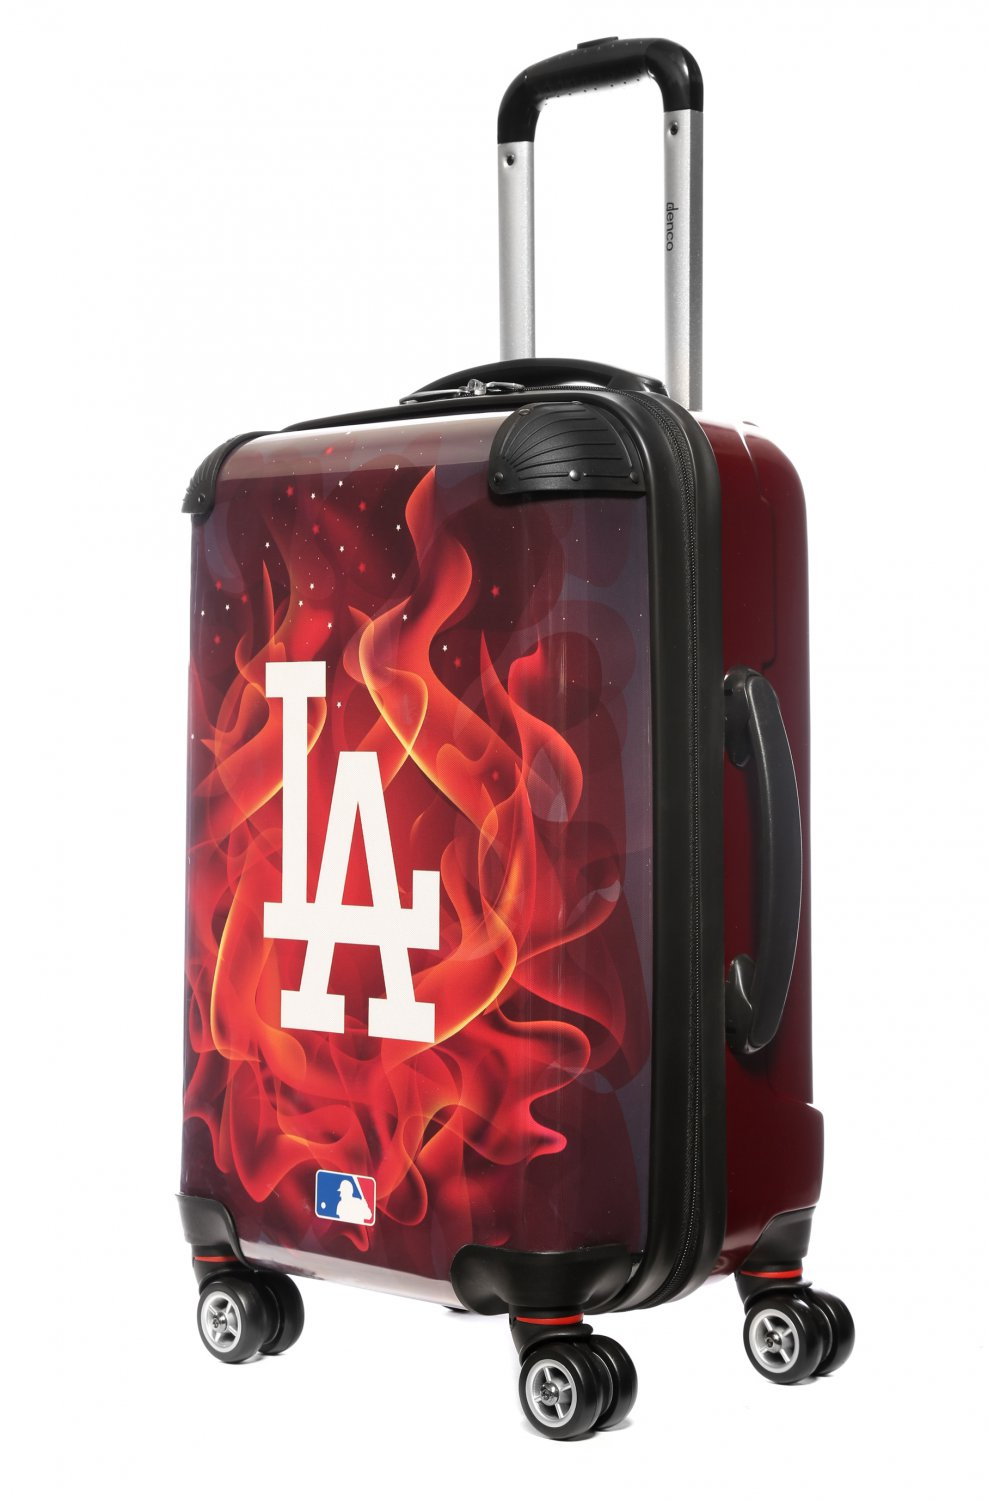 "Los Angeles Dodgers, 21"" Clear Poly Carry-On Luggage by Kaybull #LAD12"